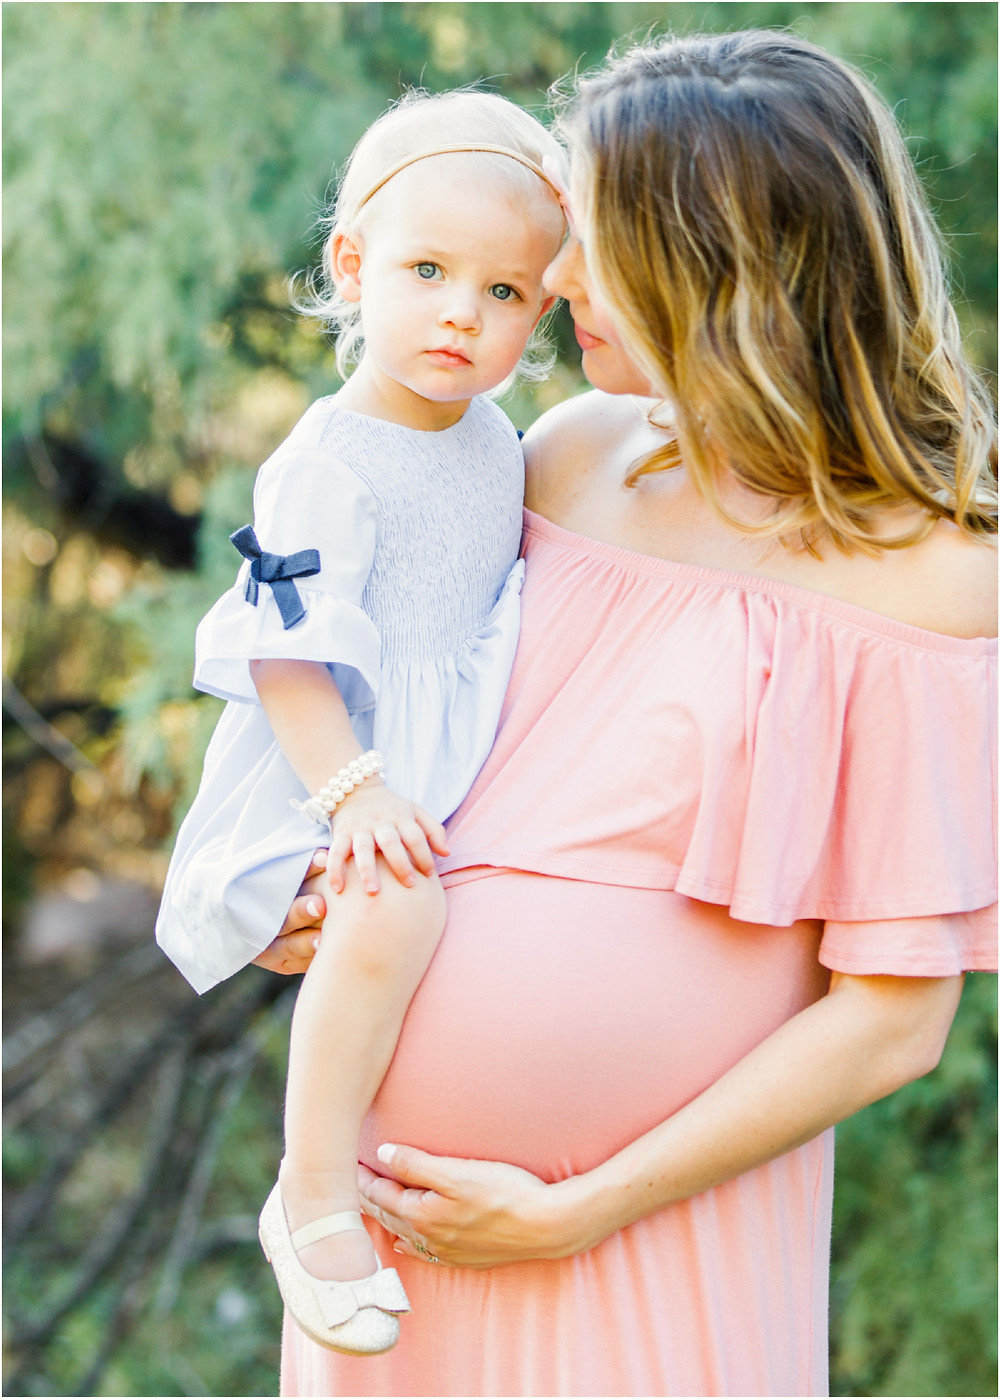 mother and daughter portrait - maternity photo in blush pink dress